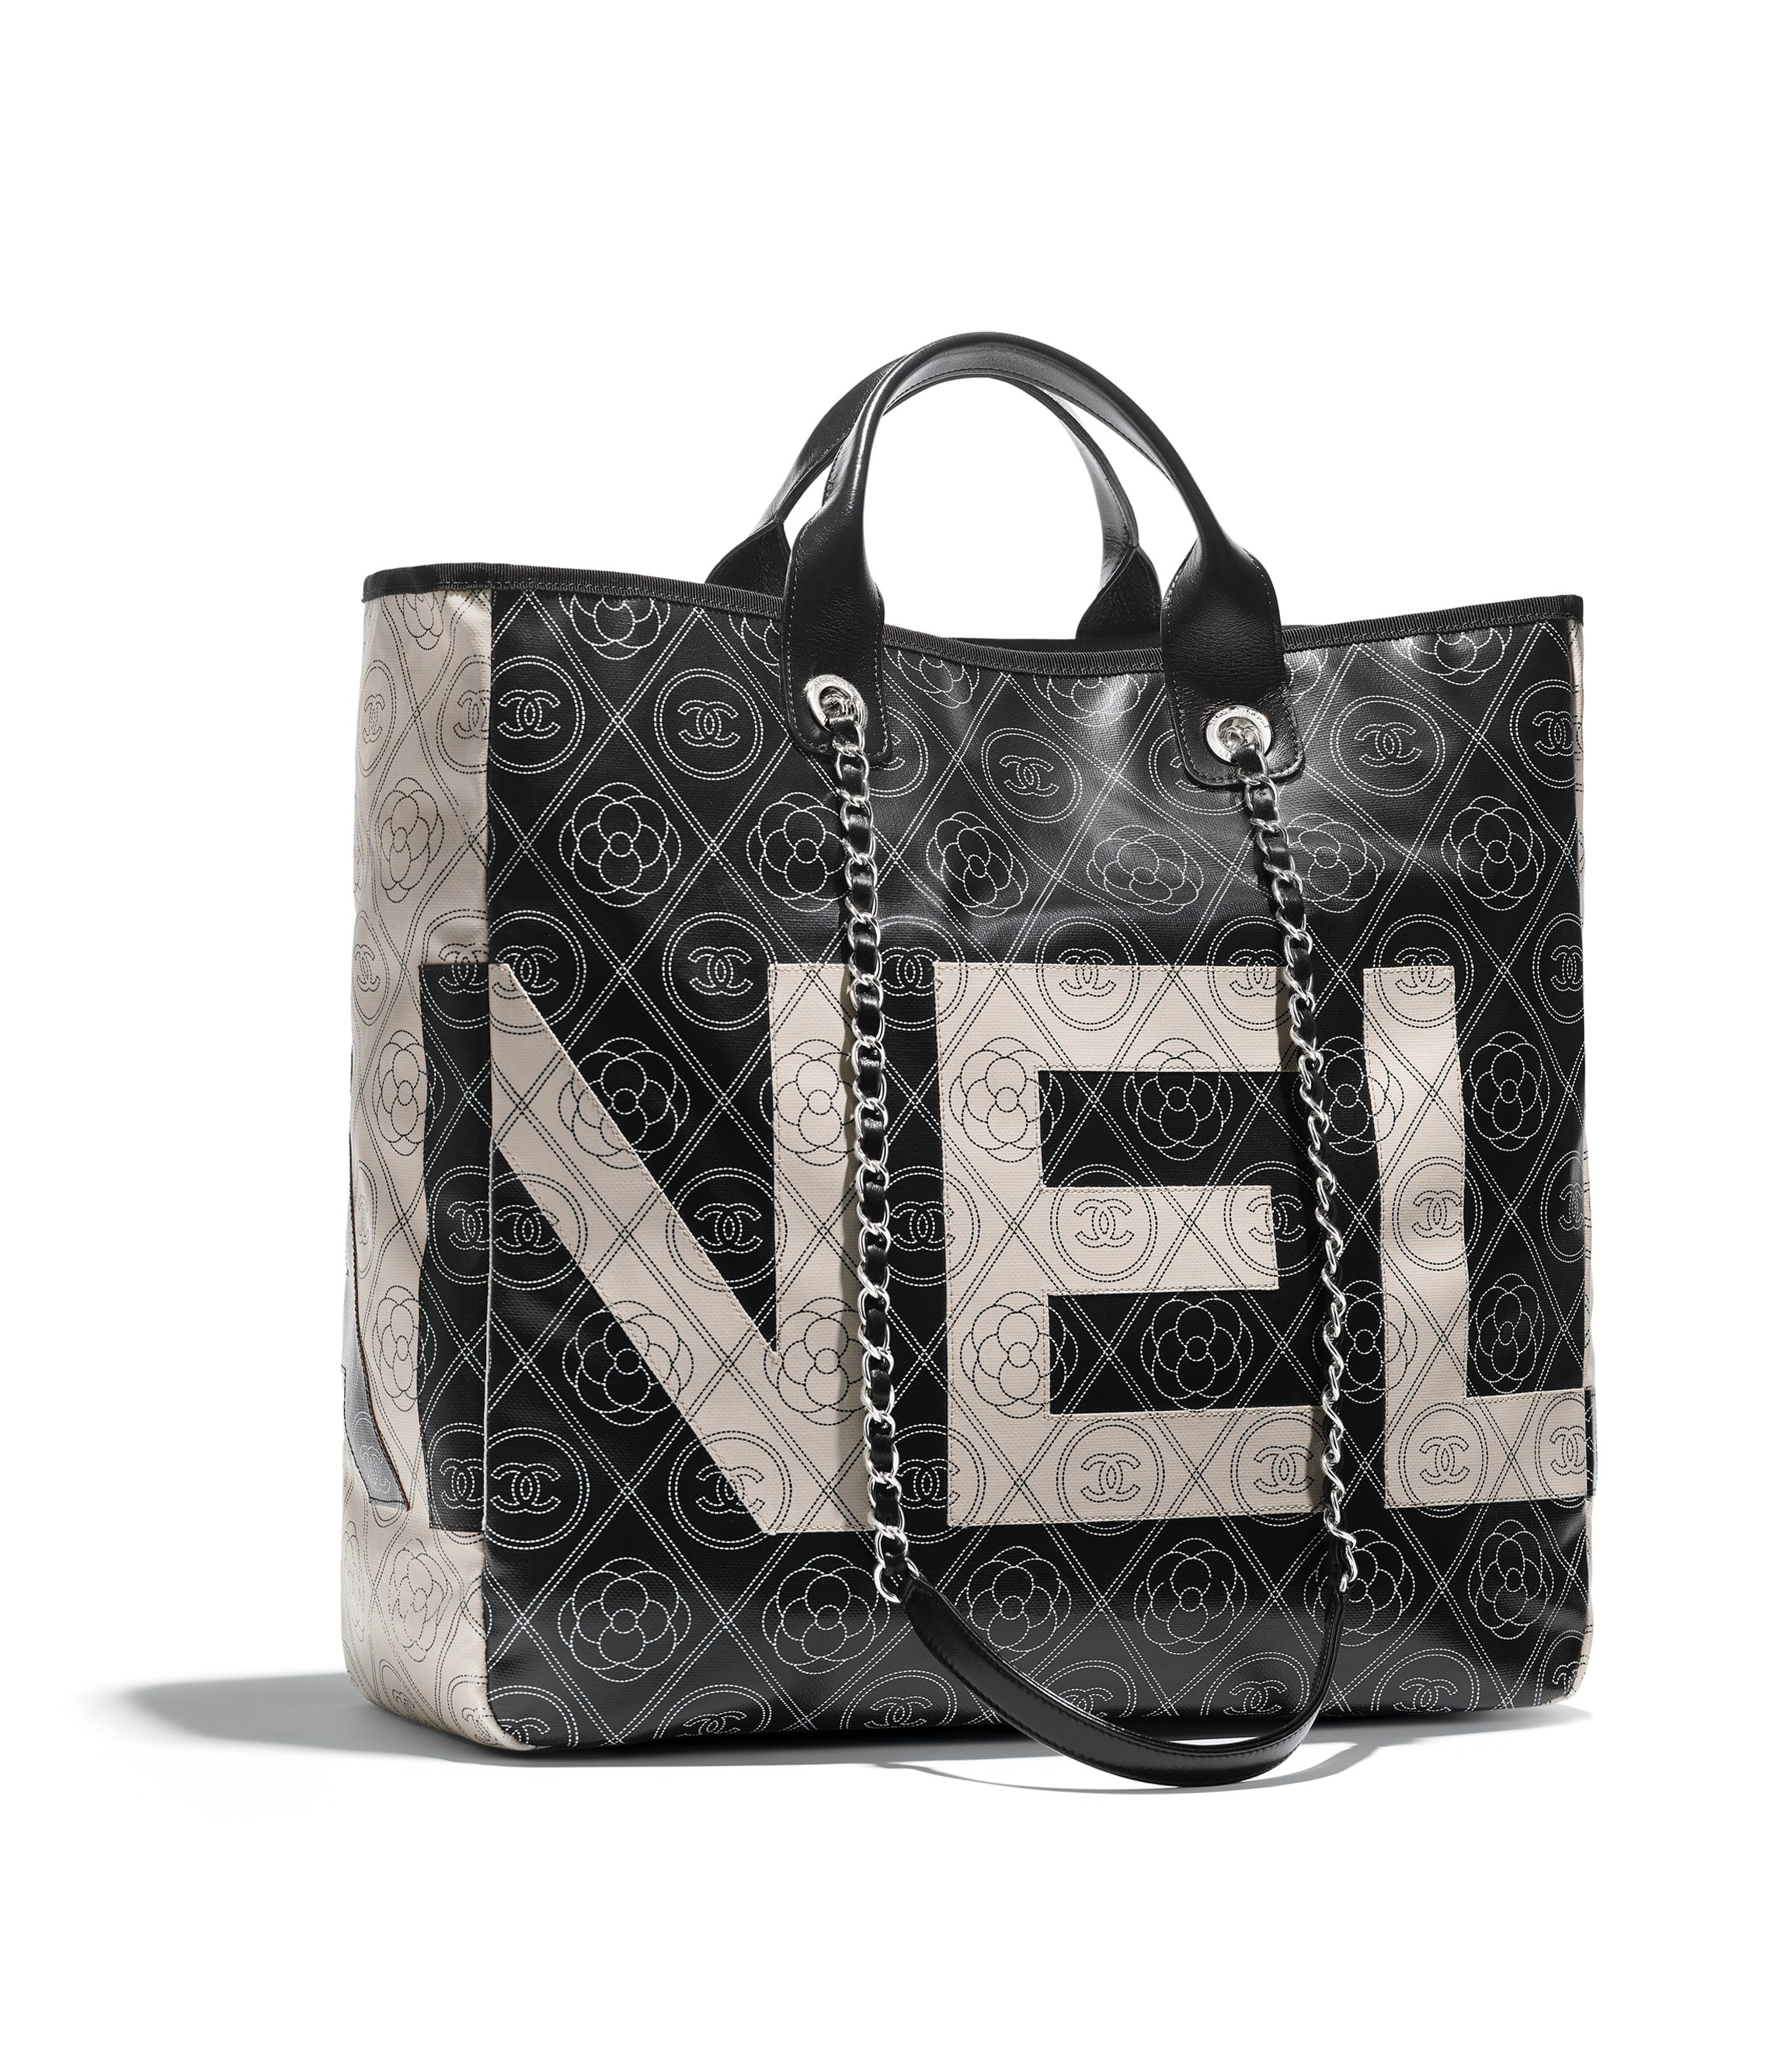 38335a532eb652 Chanel Printed Canvas Large Shopping Bag A57161 Black | Stanford ...